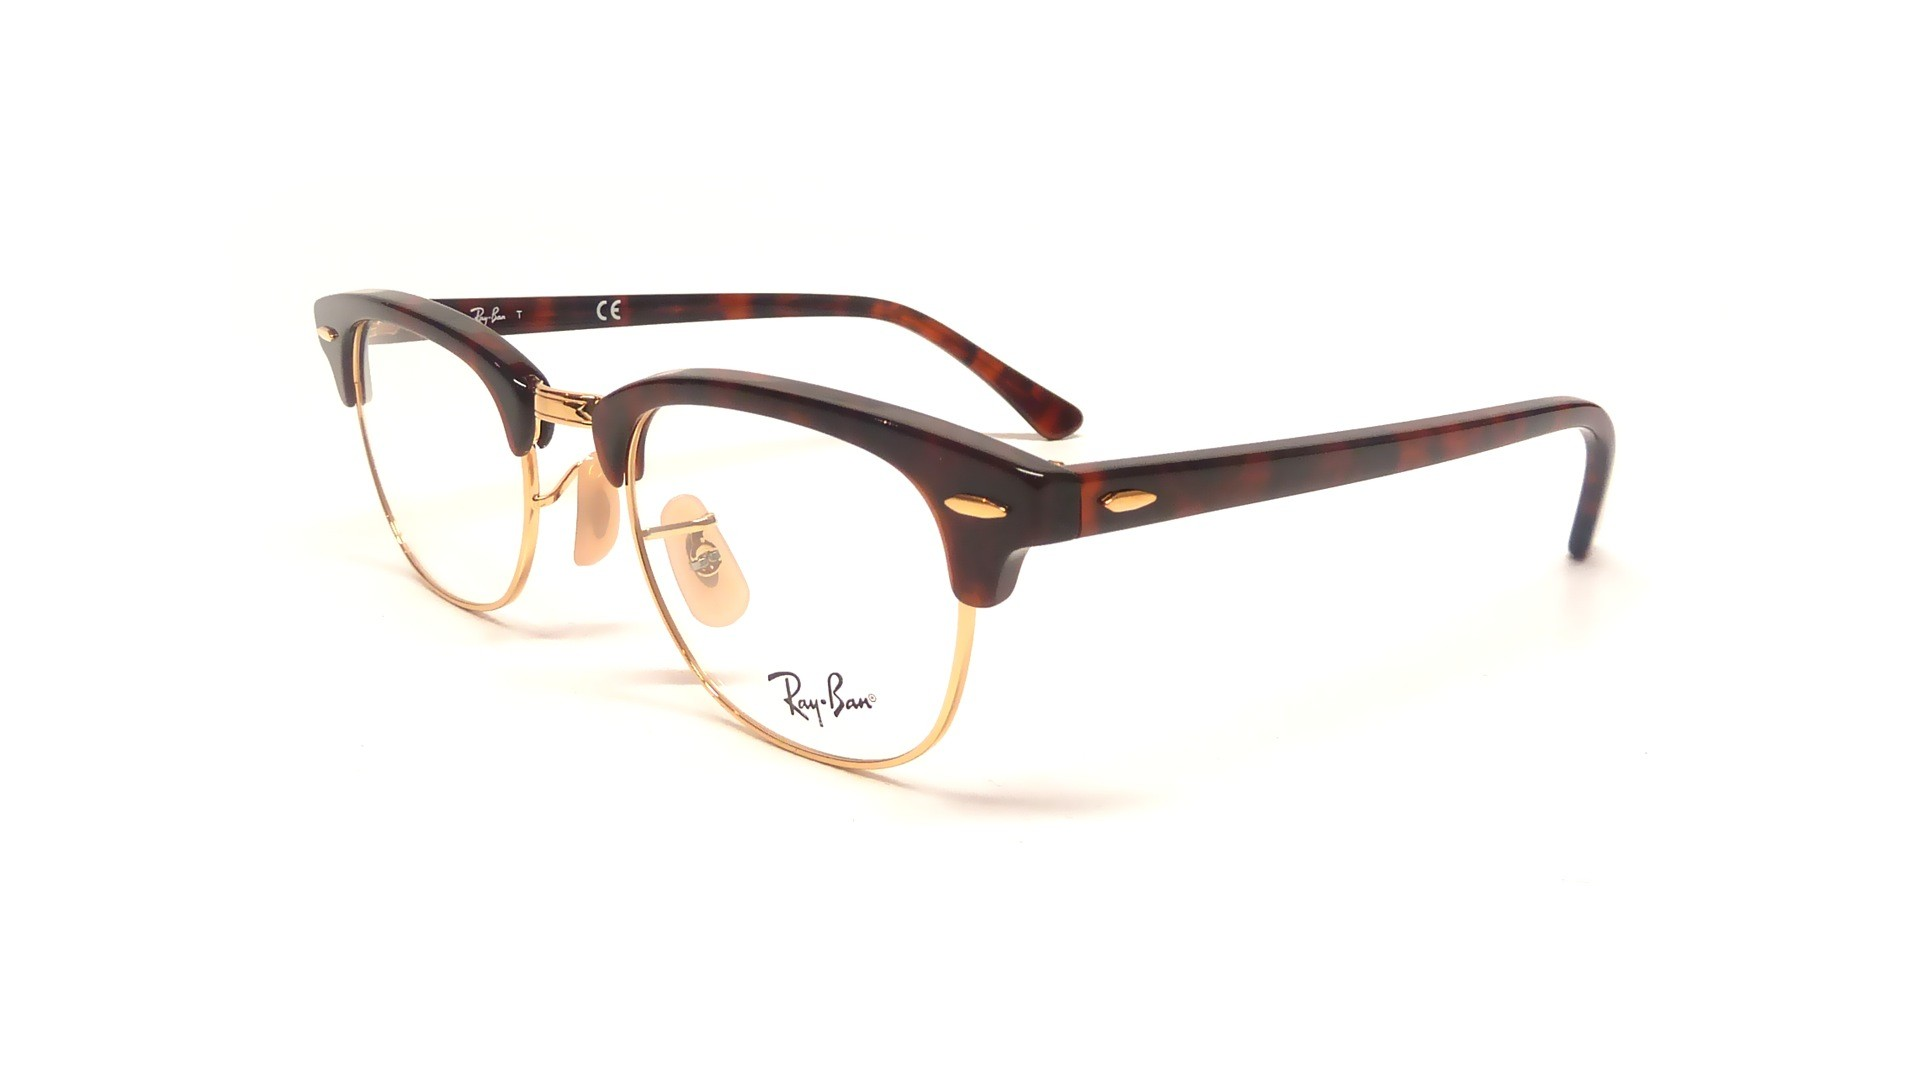 Lunettes de vue Ray-Ban Clubmaster Écaille RX5154 RB5154 2372 49-21   Prix  84,90 €   Visiofactory 4daeab1408ed